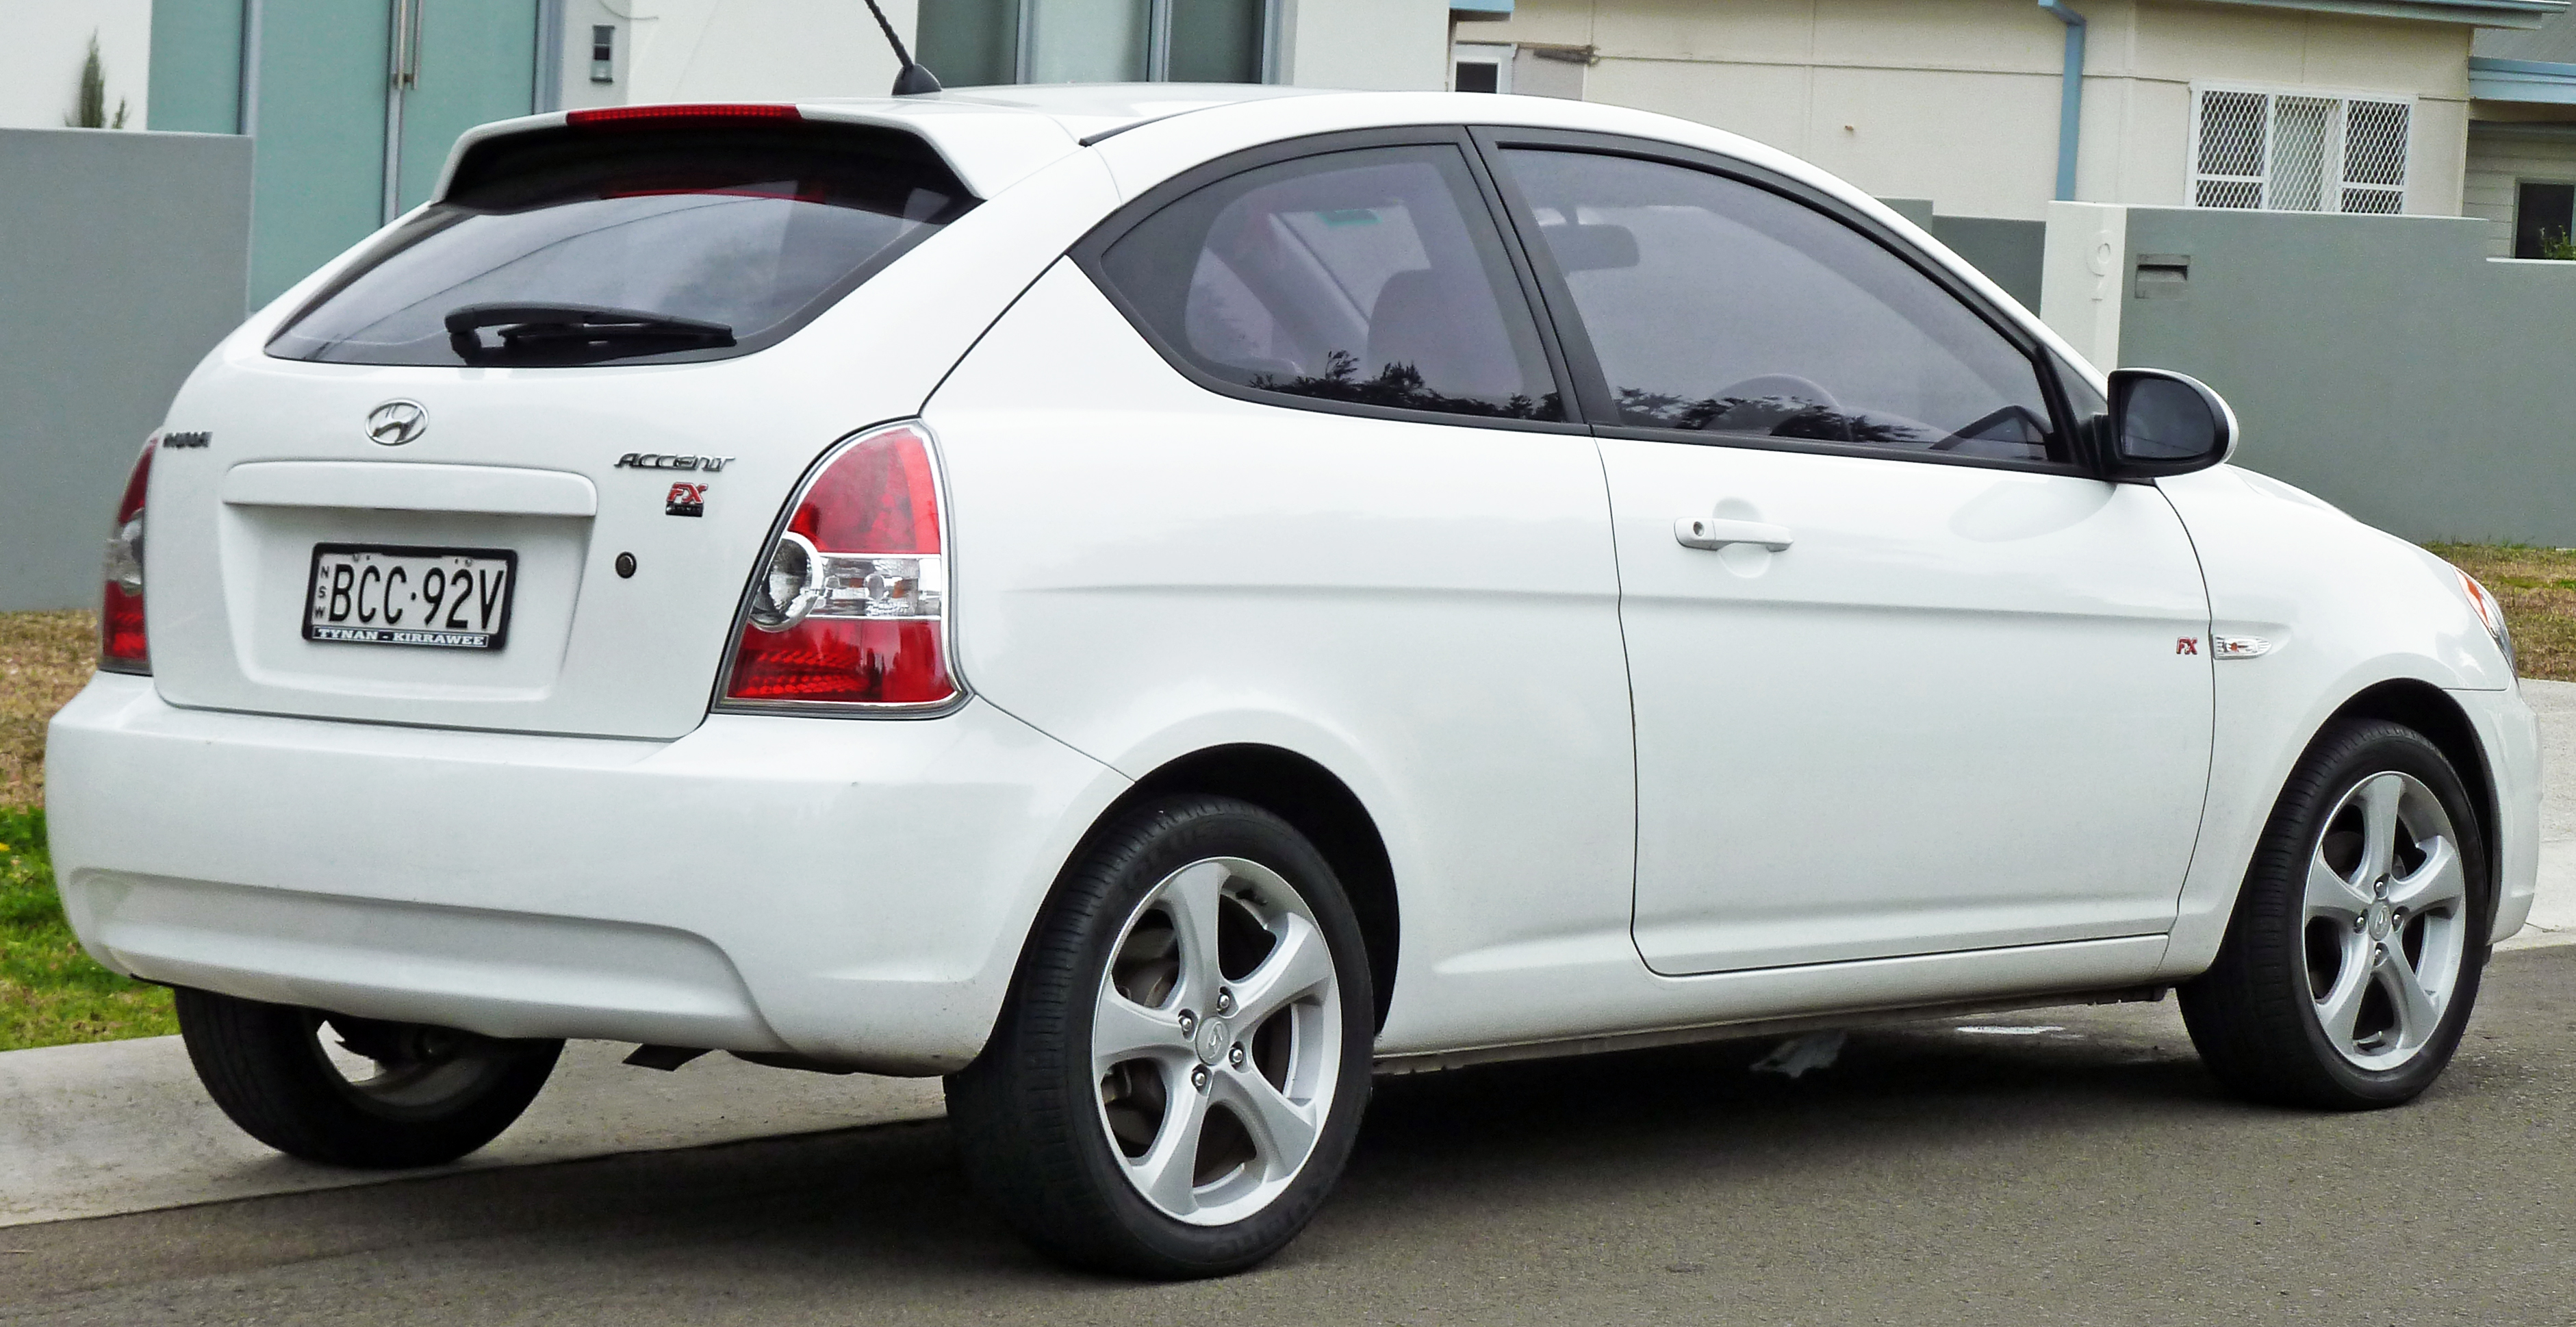 File 2006 2007 Hyundai Accent Mc Fx Limited Edition Hatchback 02 Jpg Wikimedia Commons